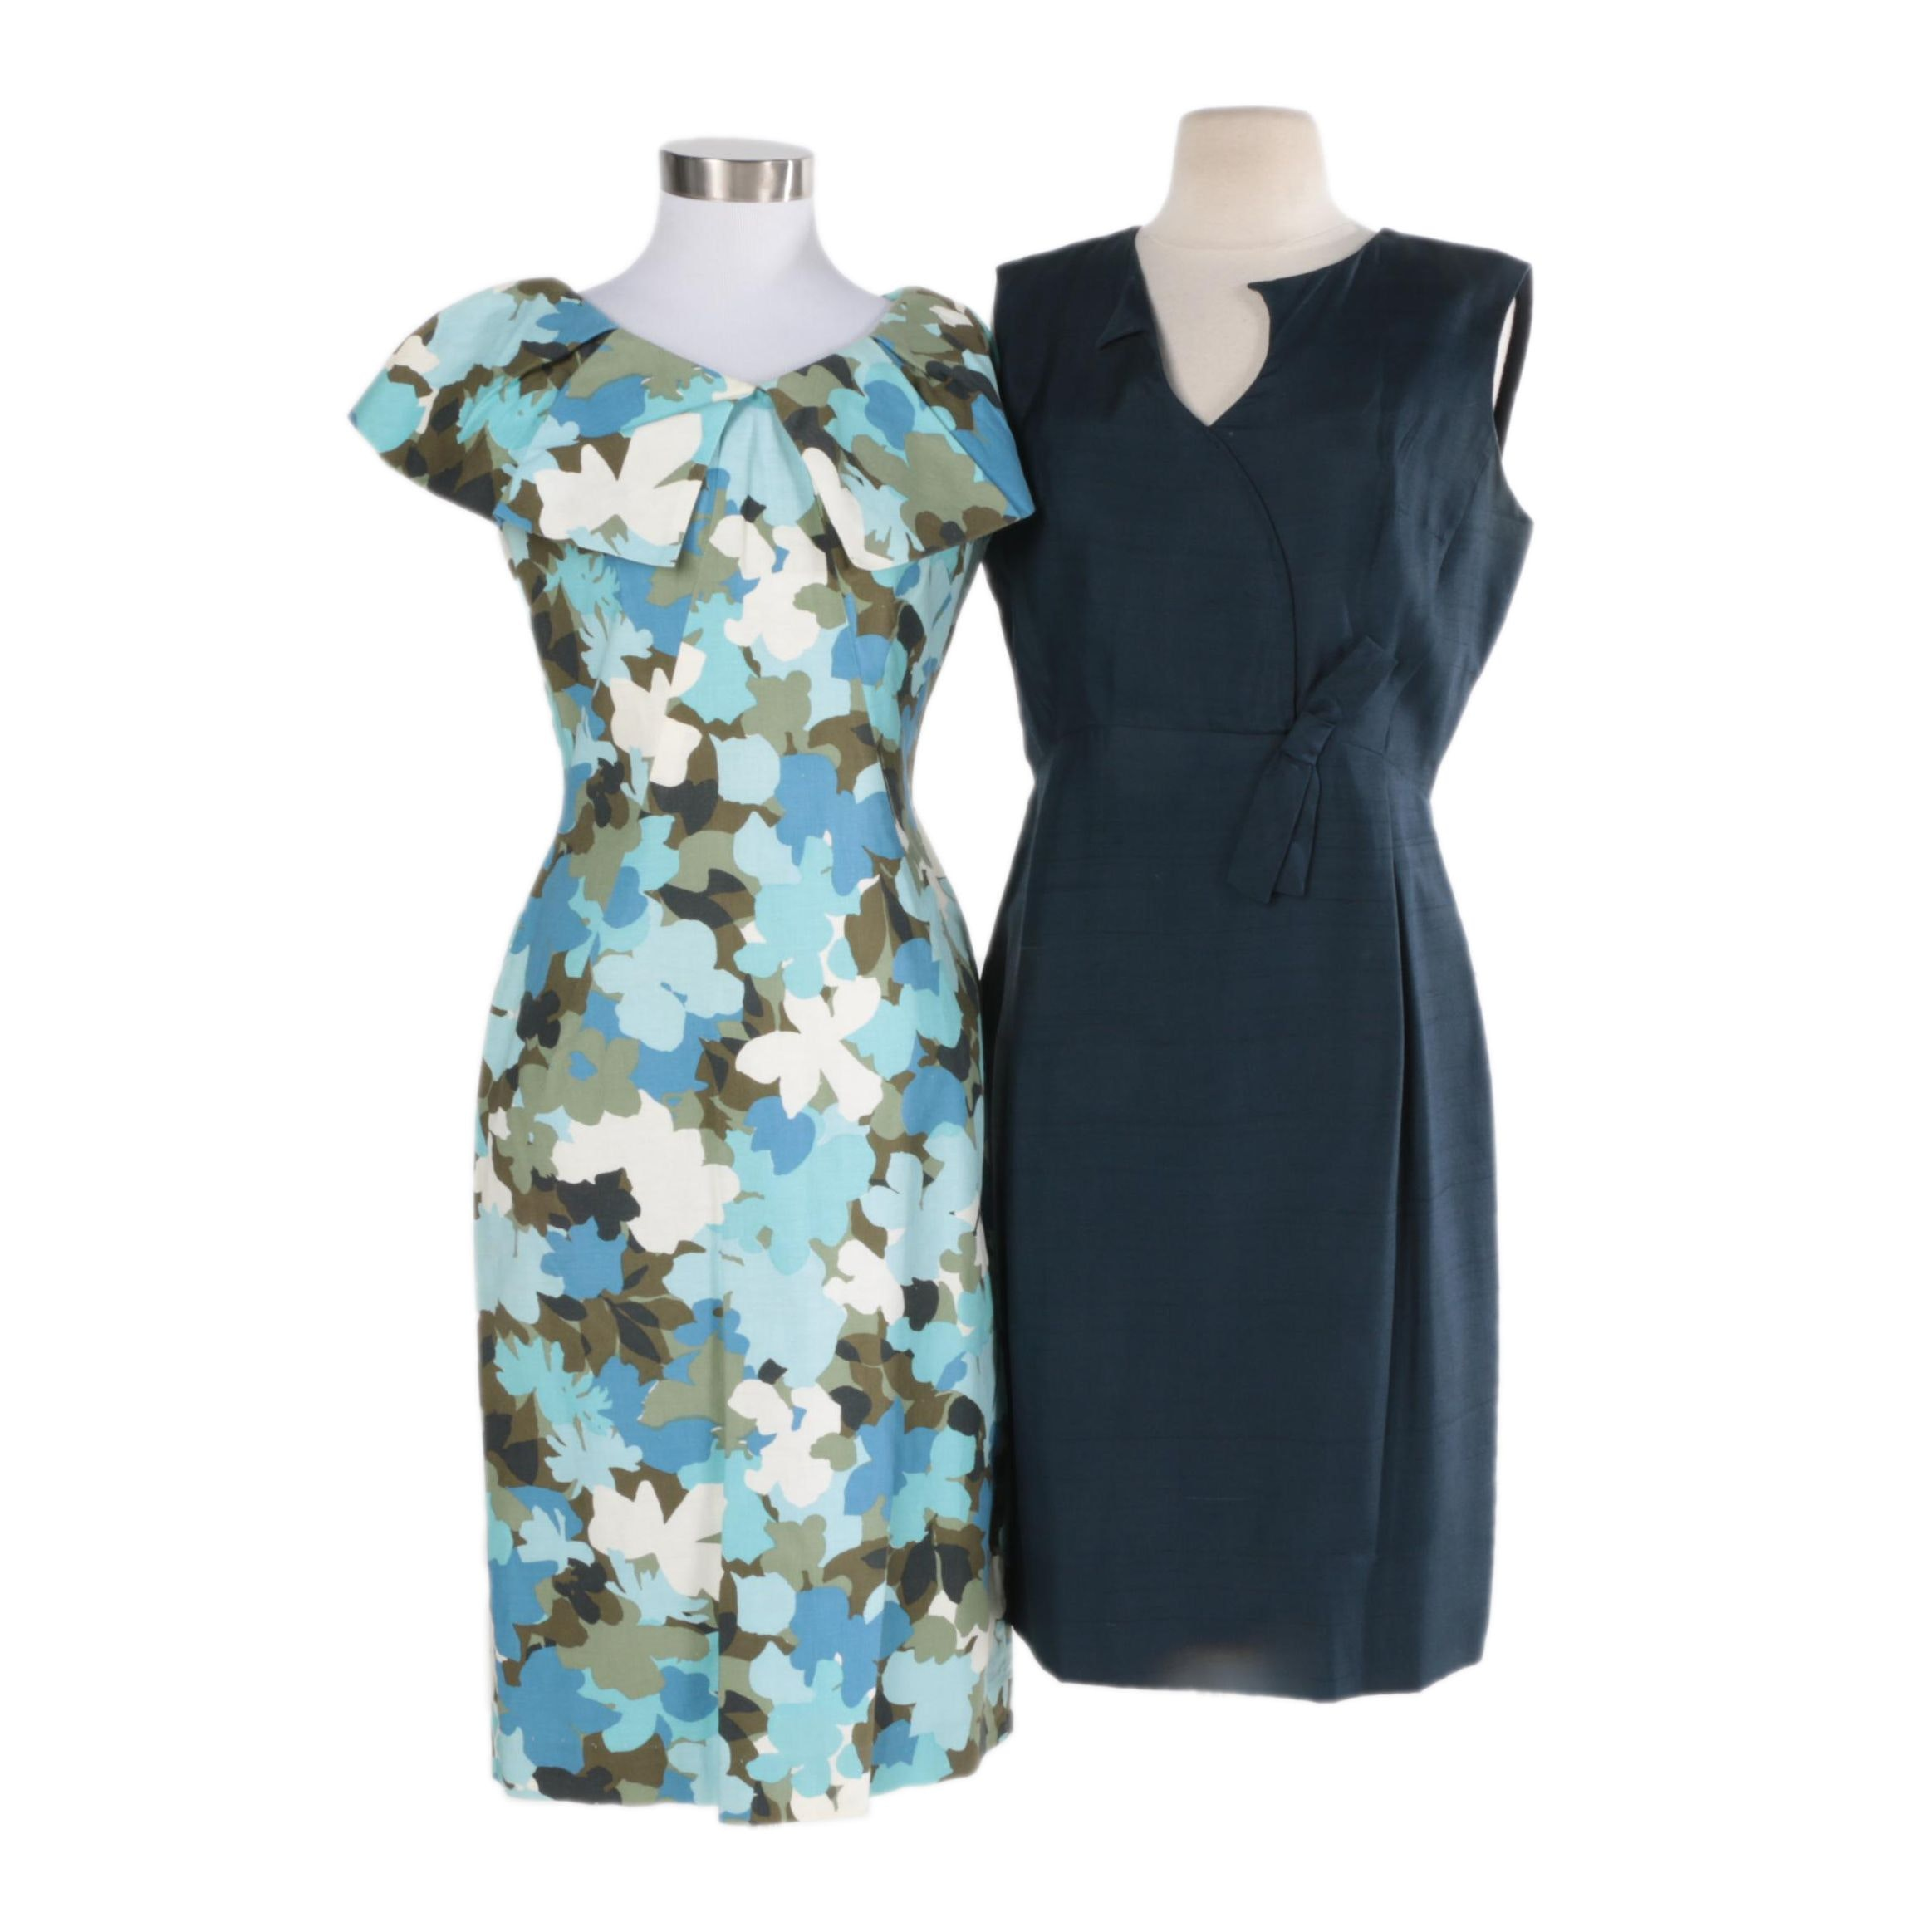 Women's Vintage Circa 1950s Sheath Dresses